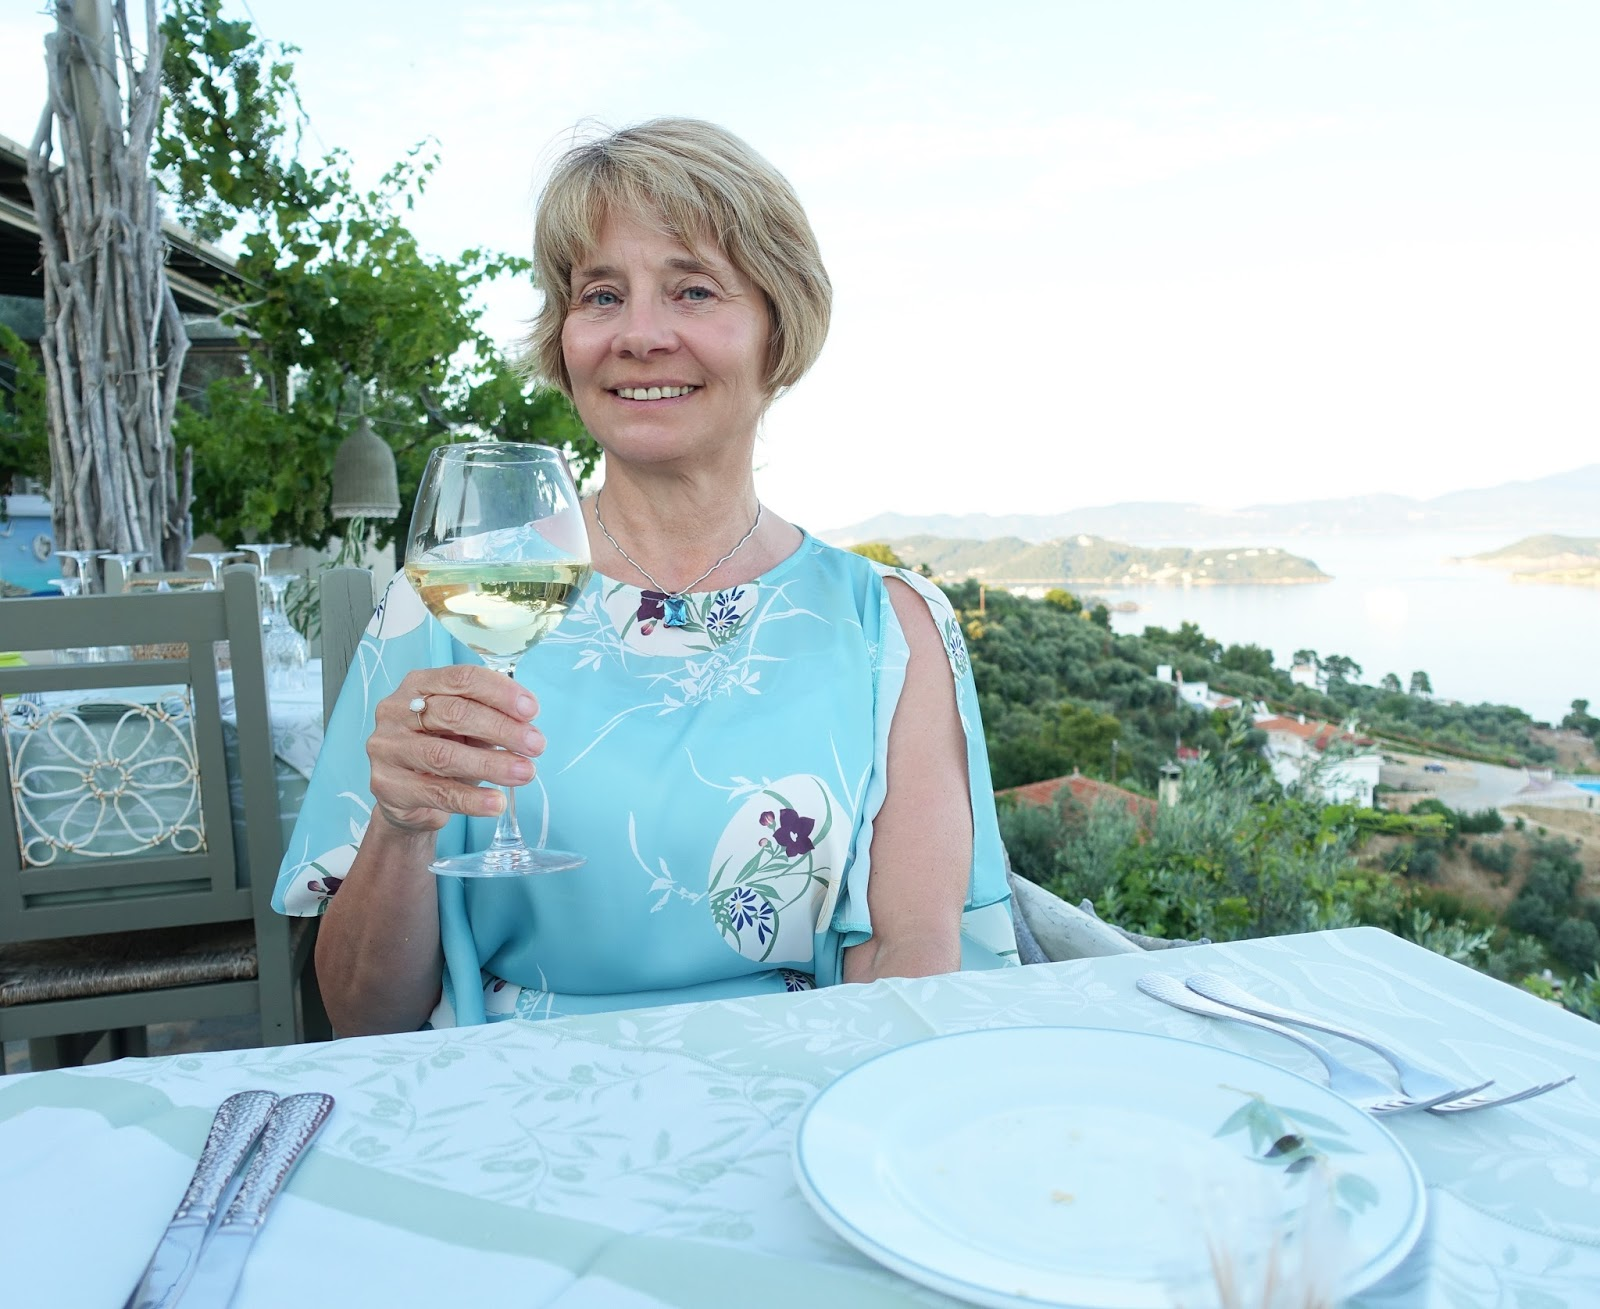 Drink in that view: Is This Mutton's Gail Hanlon at Olive Thea, Skiathos